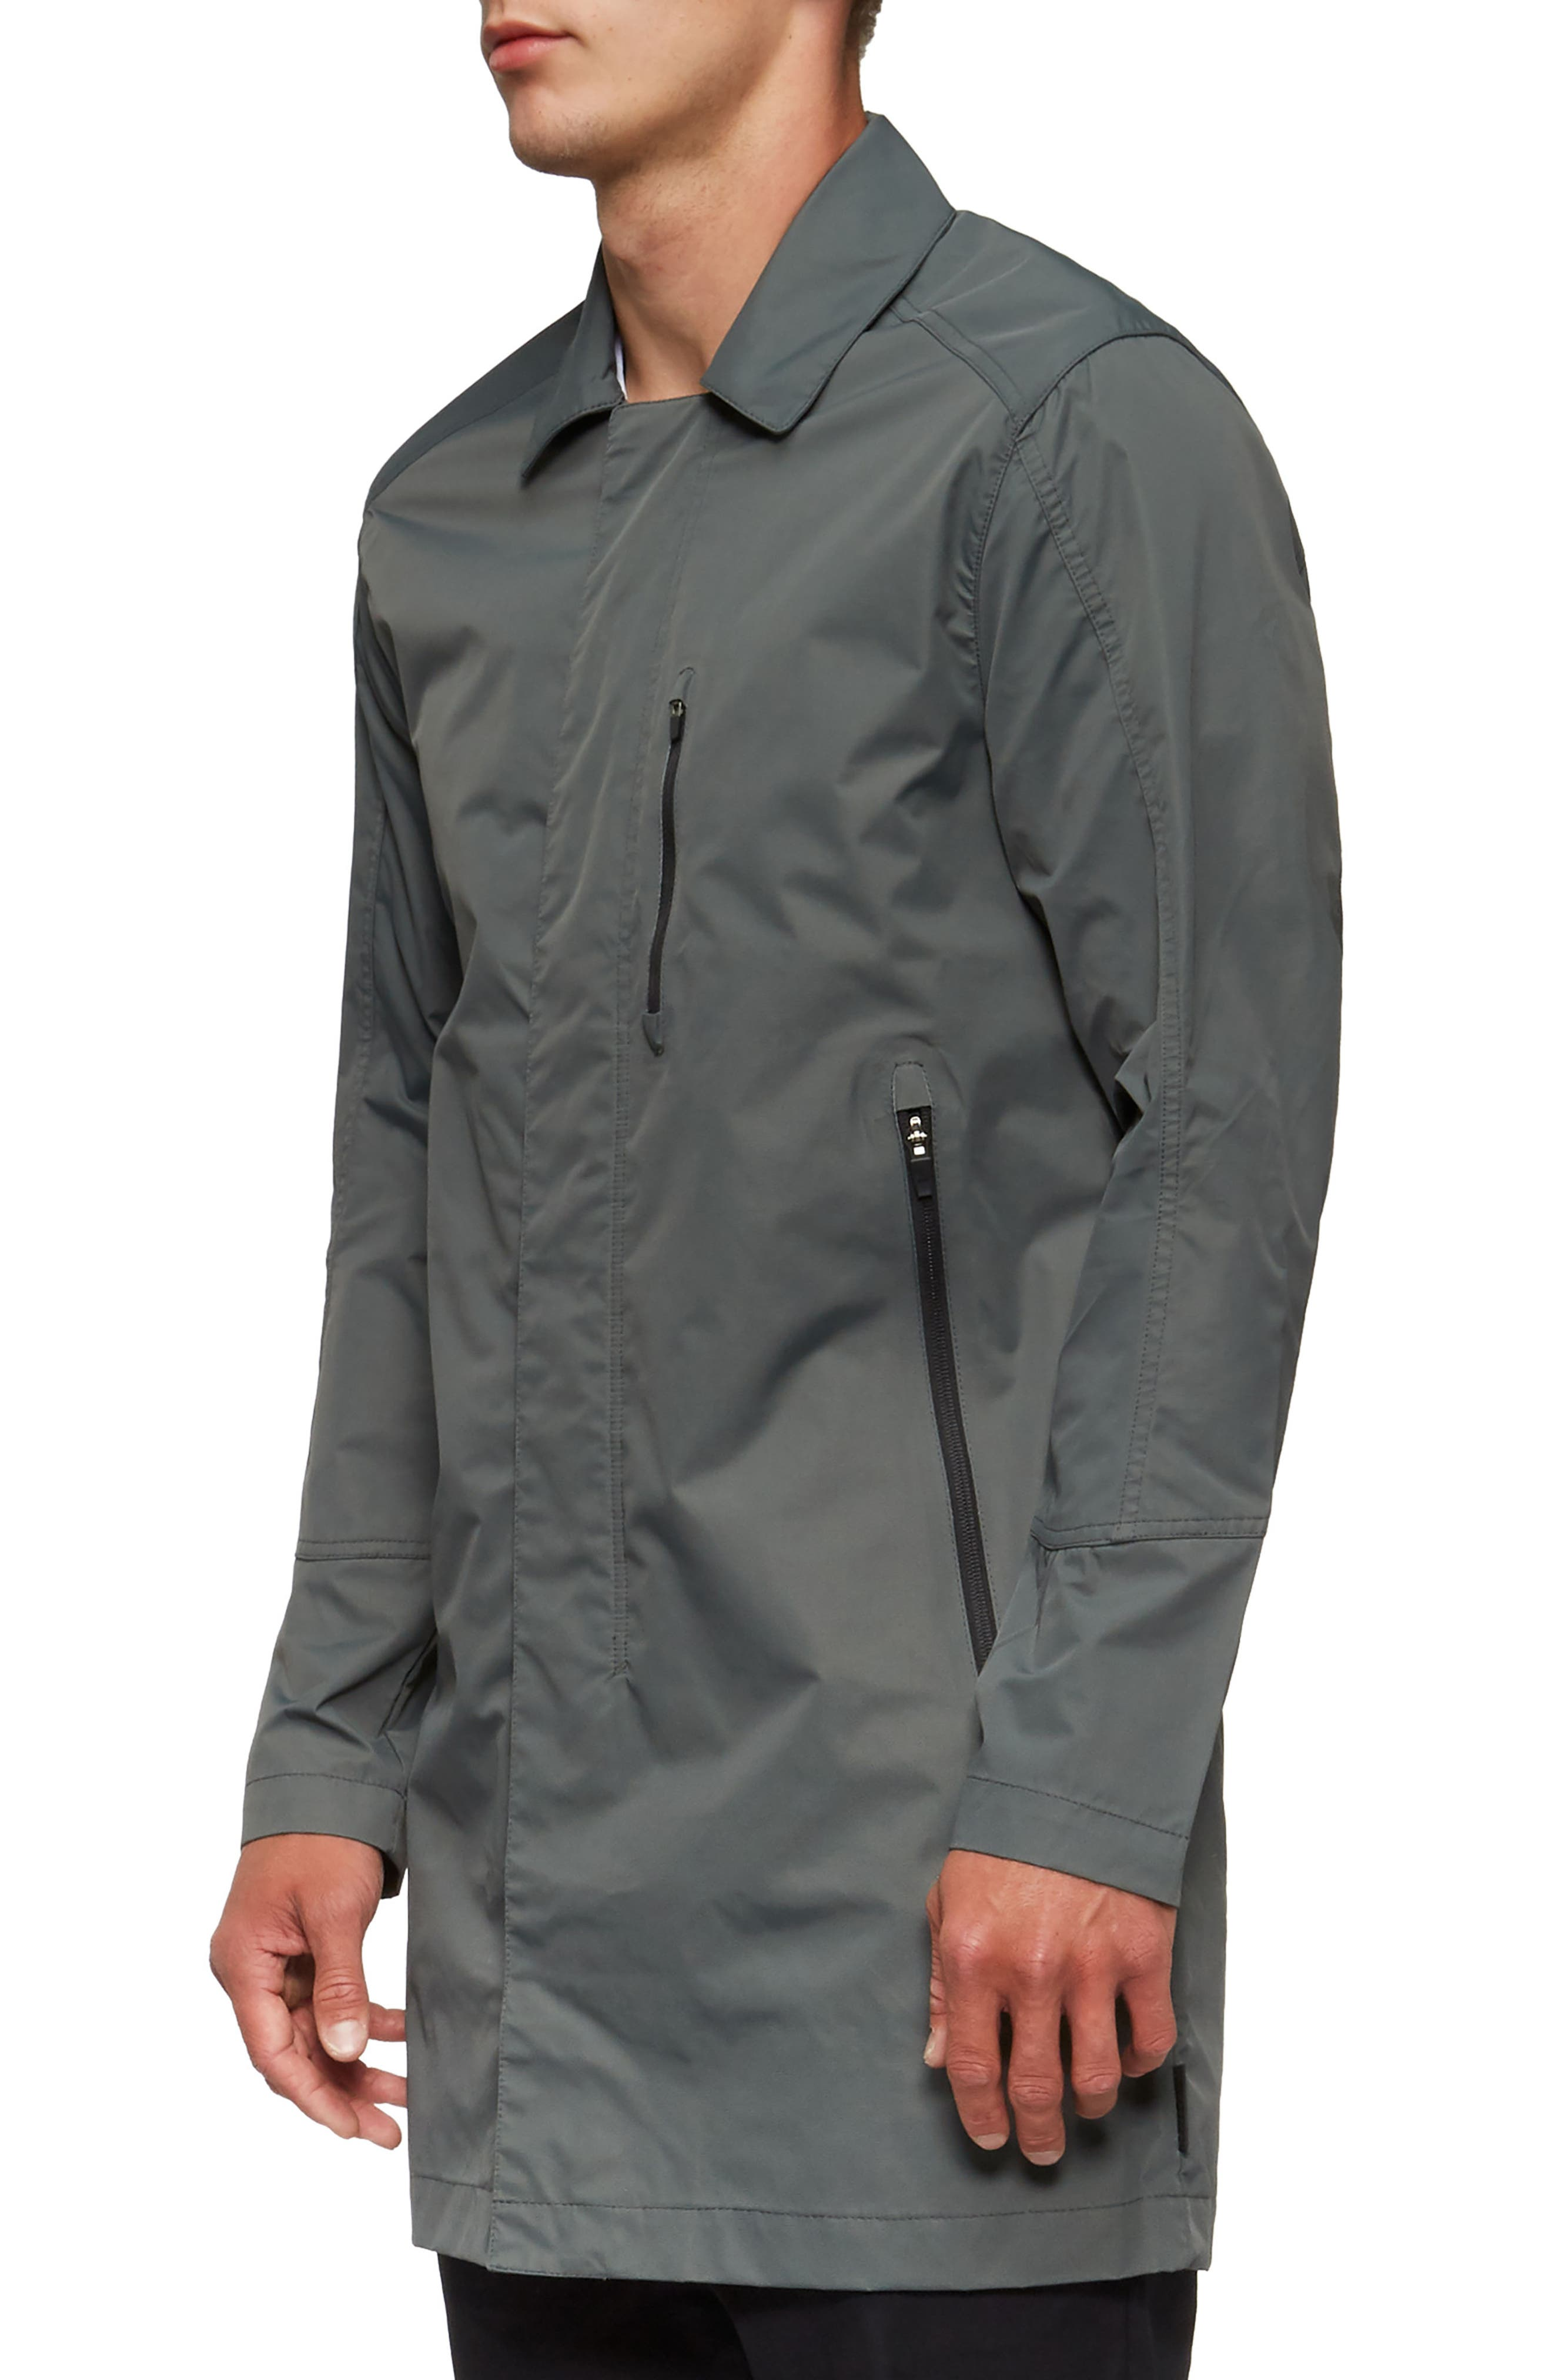 Deckard Weather Resistant Trench Coat,                             Alternate thumbnail 3, color,                             307